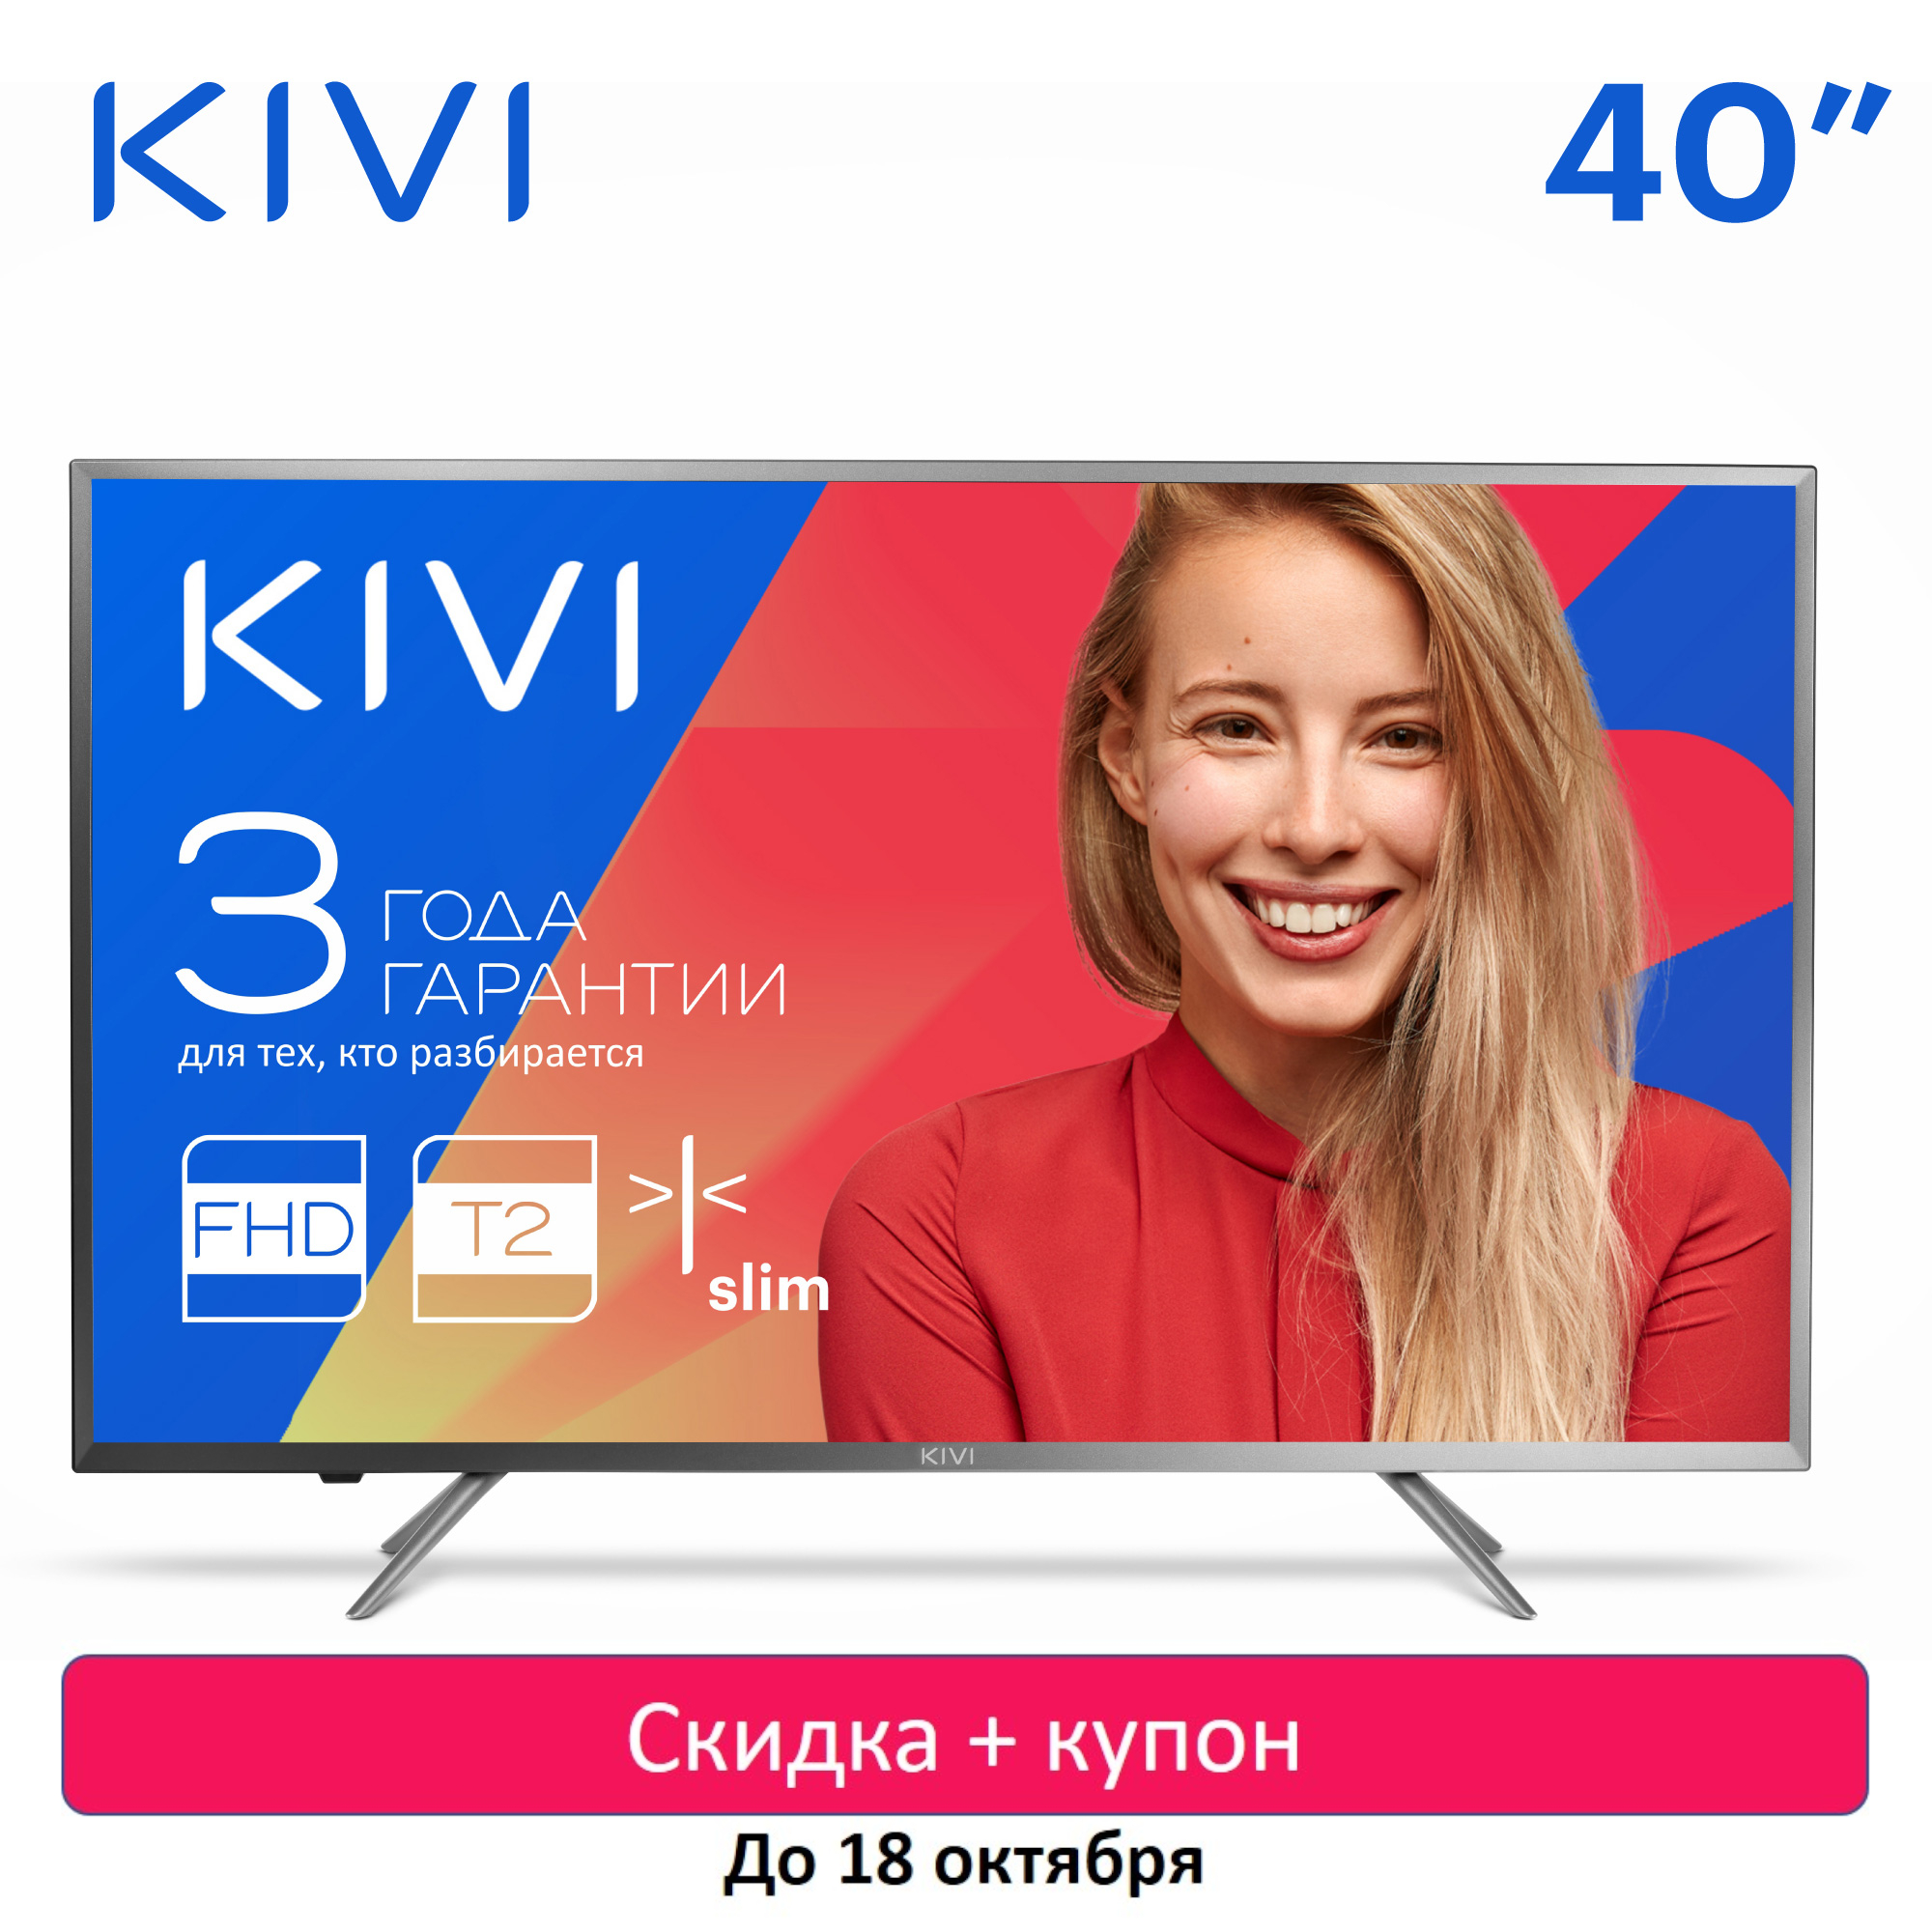 LED Television KIVI 40FB50BR Full HD Digital Dvb Dvb-t Dvb-t2 40inchTv